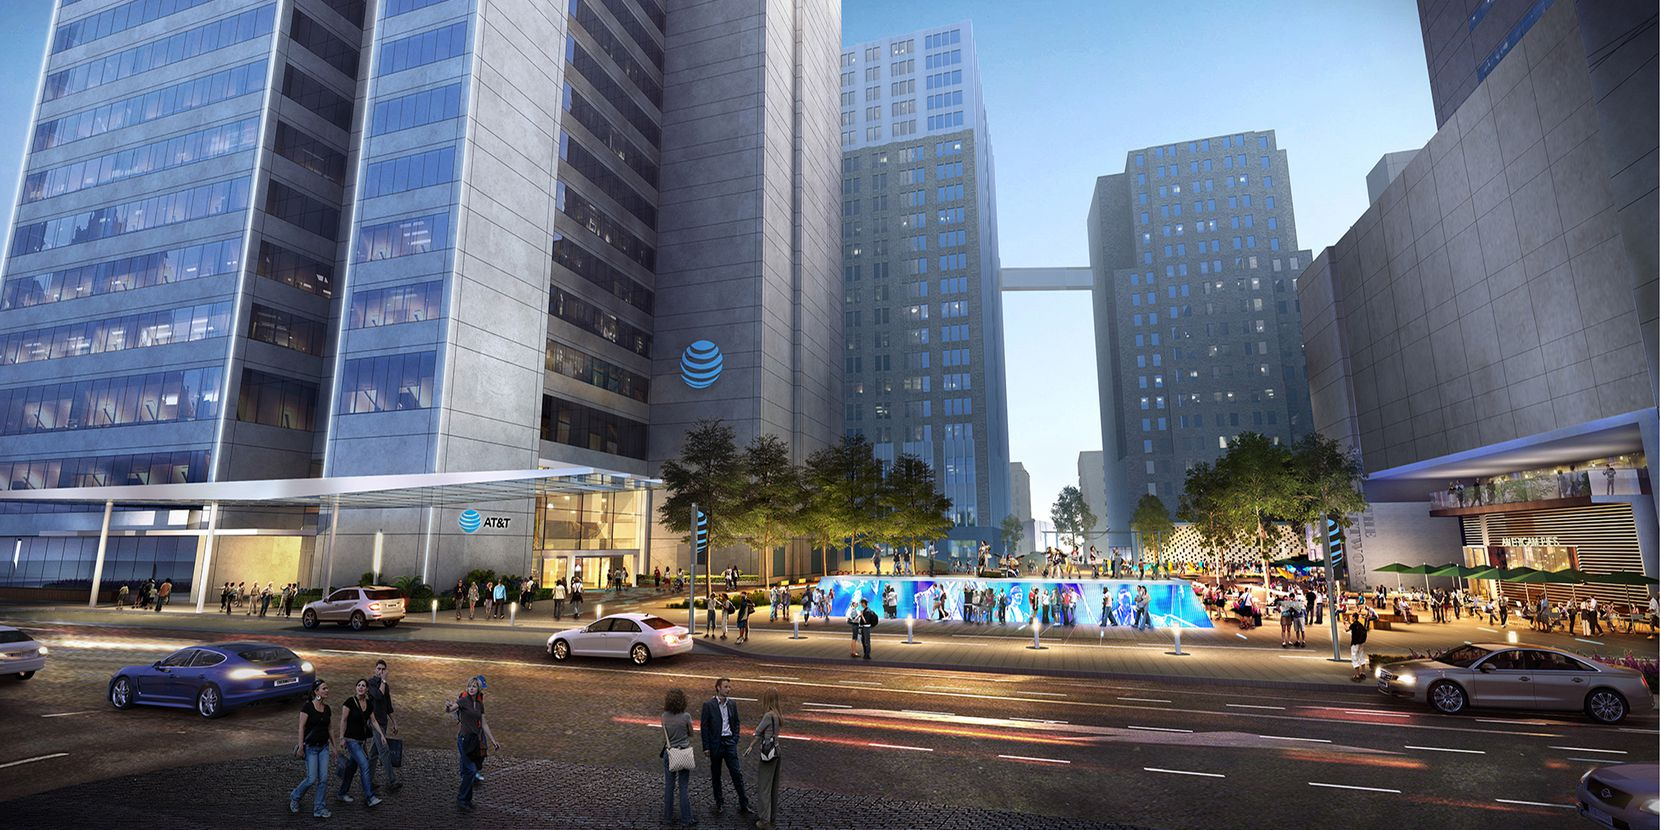 The plaza in front of AT&T's headquarters will get new fountains, lighting and art.